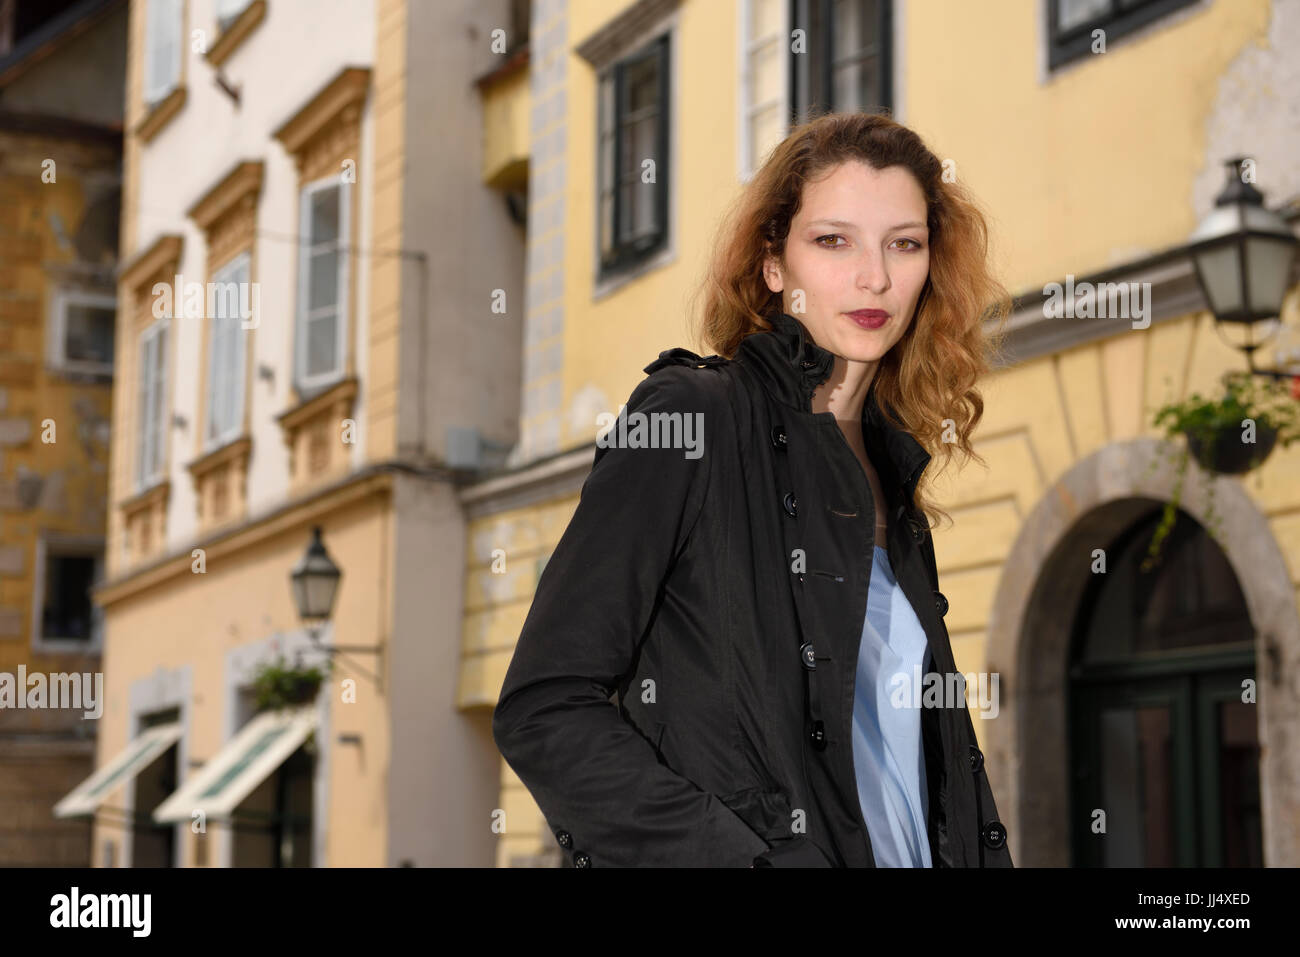 Young attractive female tourist with trench coat in Upper Square of the old town of Ljubljana Slovenia - Stock Image